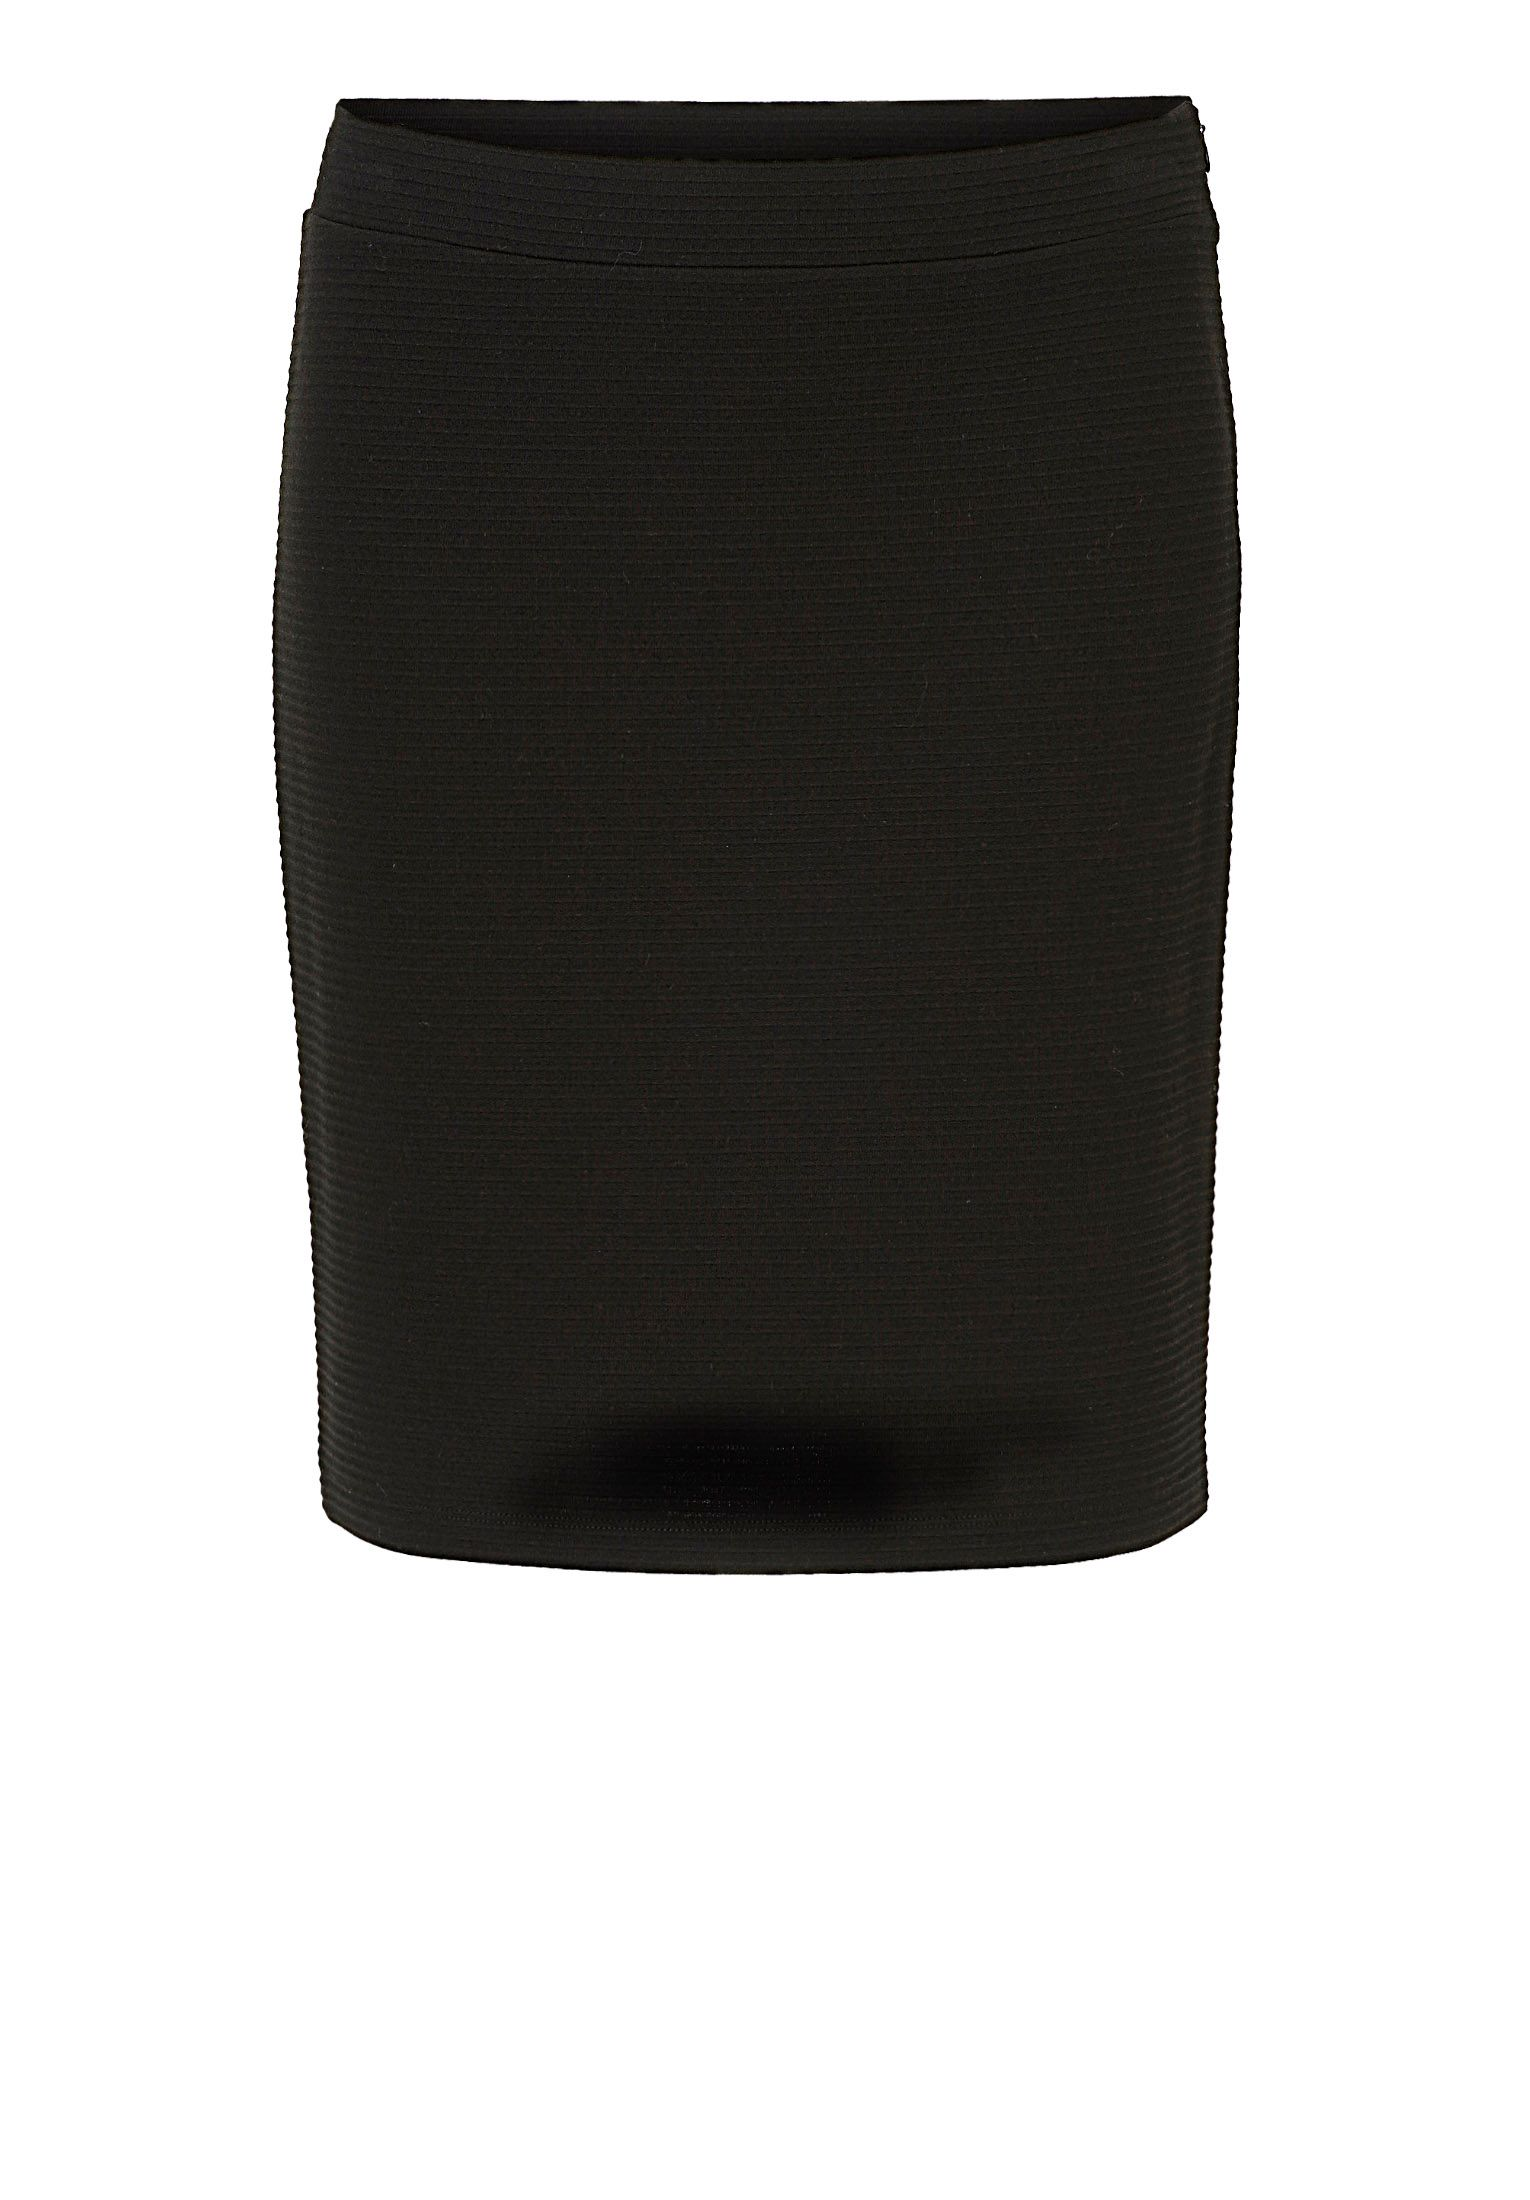 Betty & Co. Pull-on skirt, Black